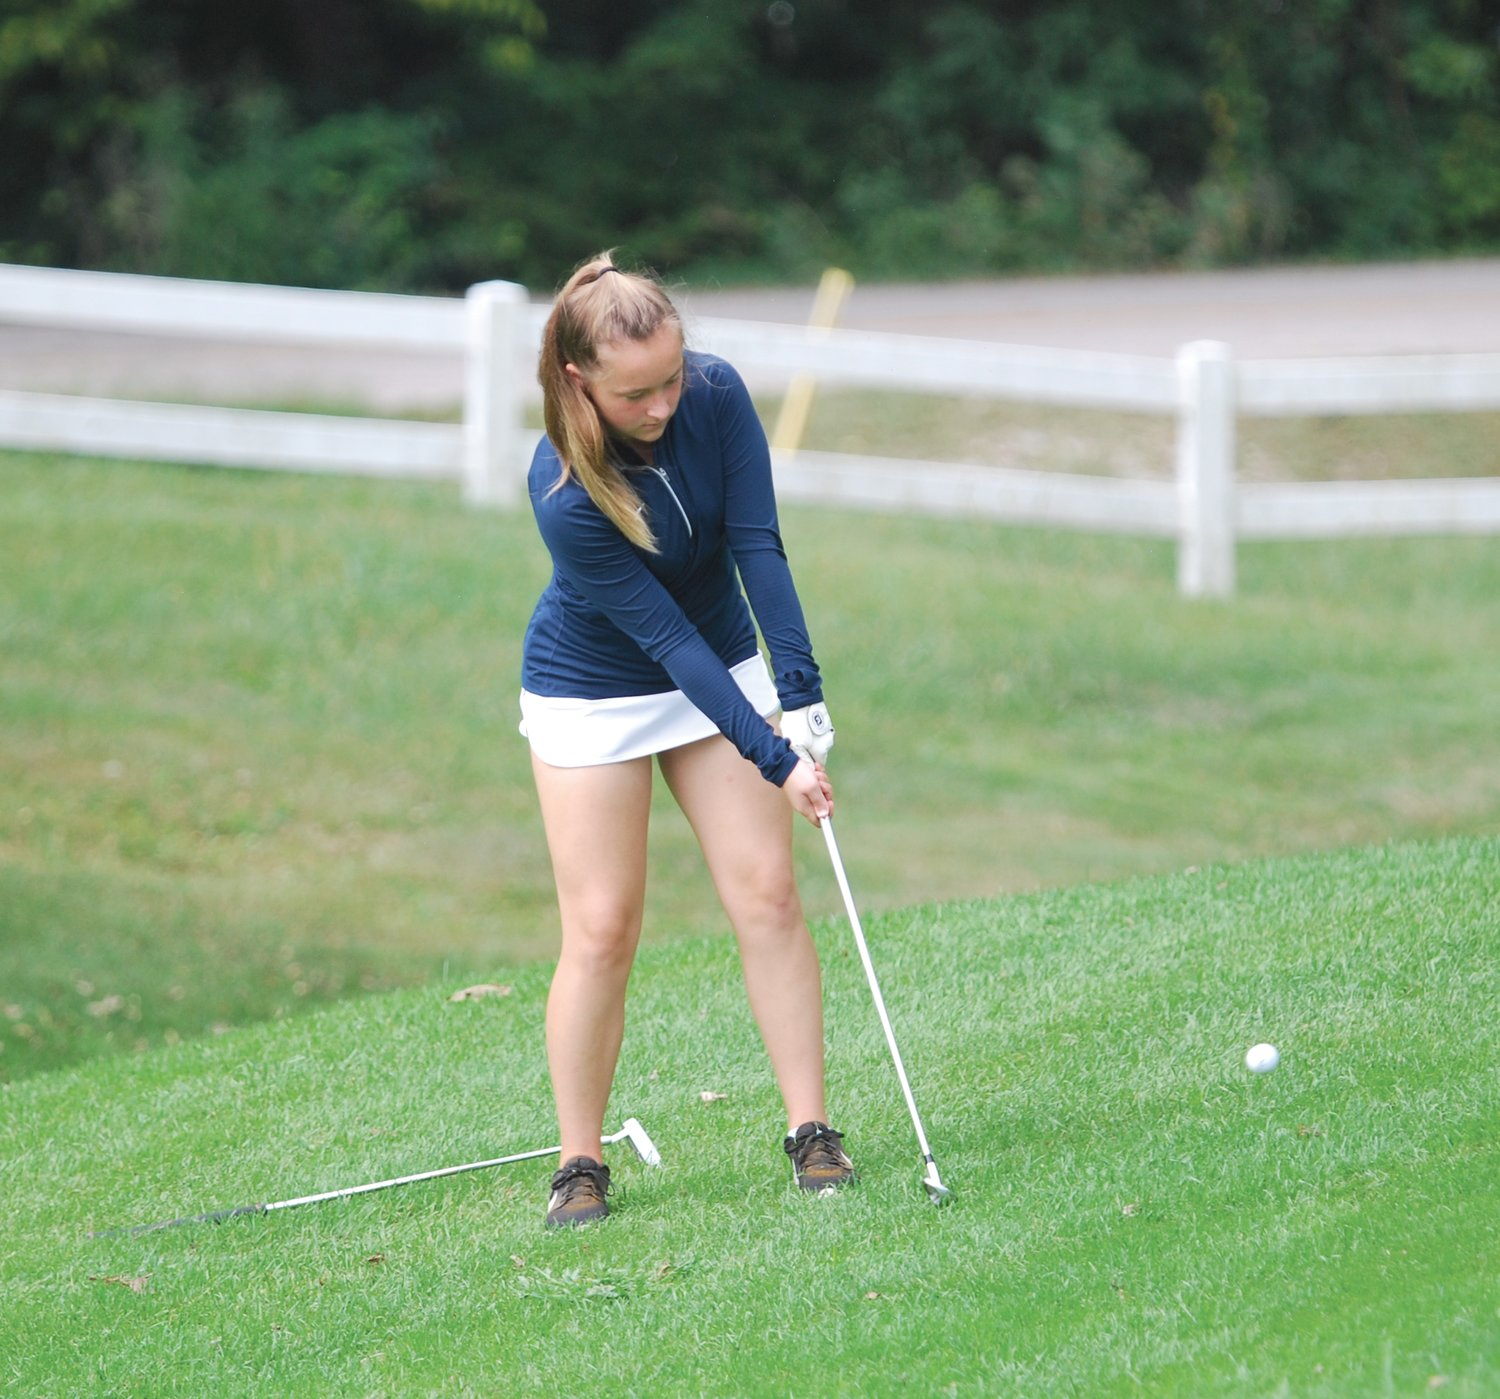 North Montgomery's Maggie Yeager chips toward the green on No. 18 the Crawfordsville Country Club on Saturday.